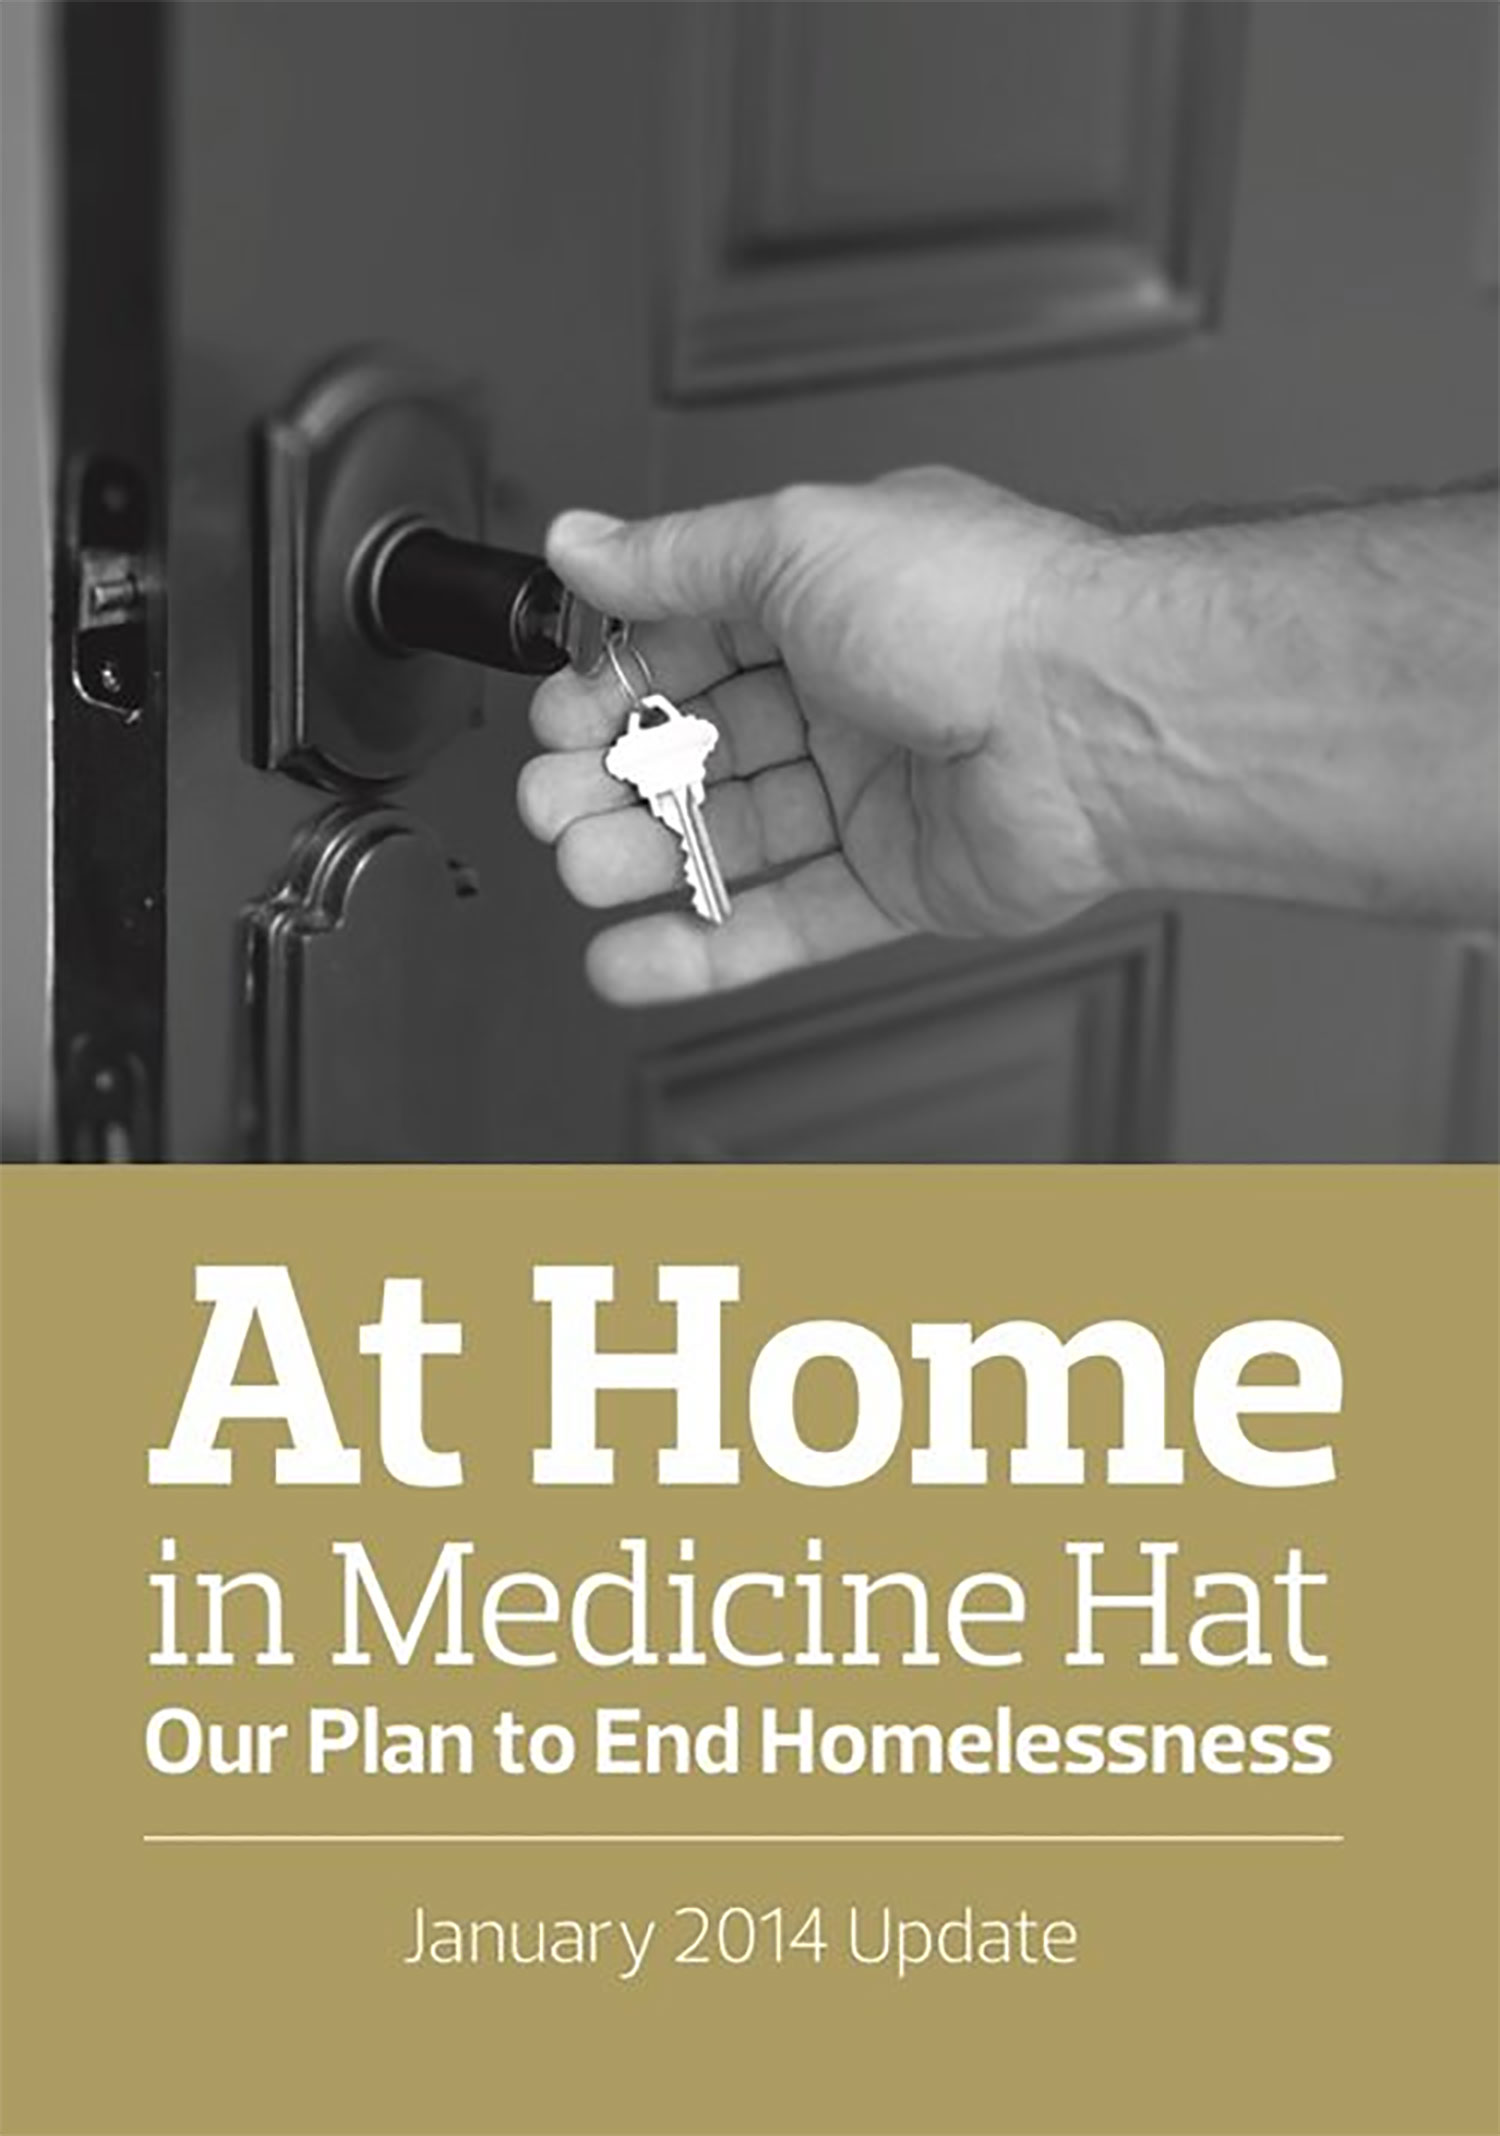 Medicine Hat Plan to End Homelessness - Medicine Hat is known as the first city to eliminate chronic homelessness. Our work with the Medicine Hat Community Housing Society focused on evaluating their strategic approach, engaging diverse stakeholders in re-visioning the Plan and proposing a new way forward. The Plan outlines targets, performance metrics as well specific actions and resources needed to end homelessness. This Plan is considered a model for other communities, not simply because of its promised, but because of Medicine Hatters' ability to deliver on it.Download Report